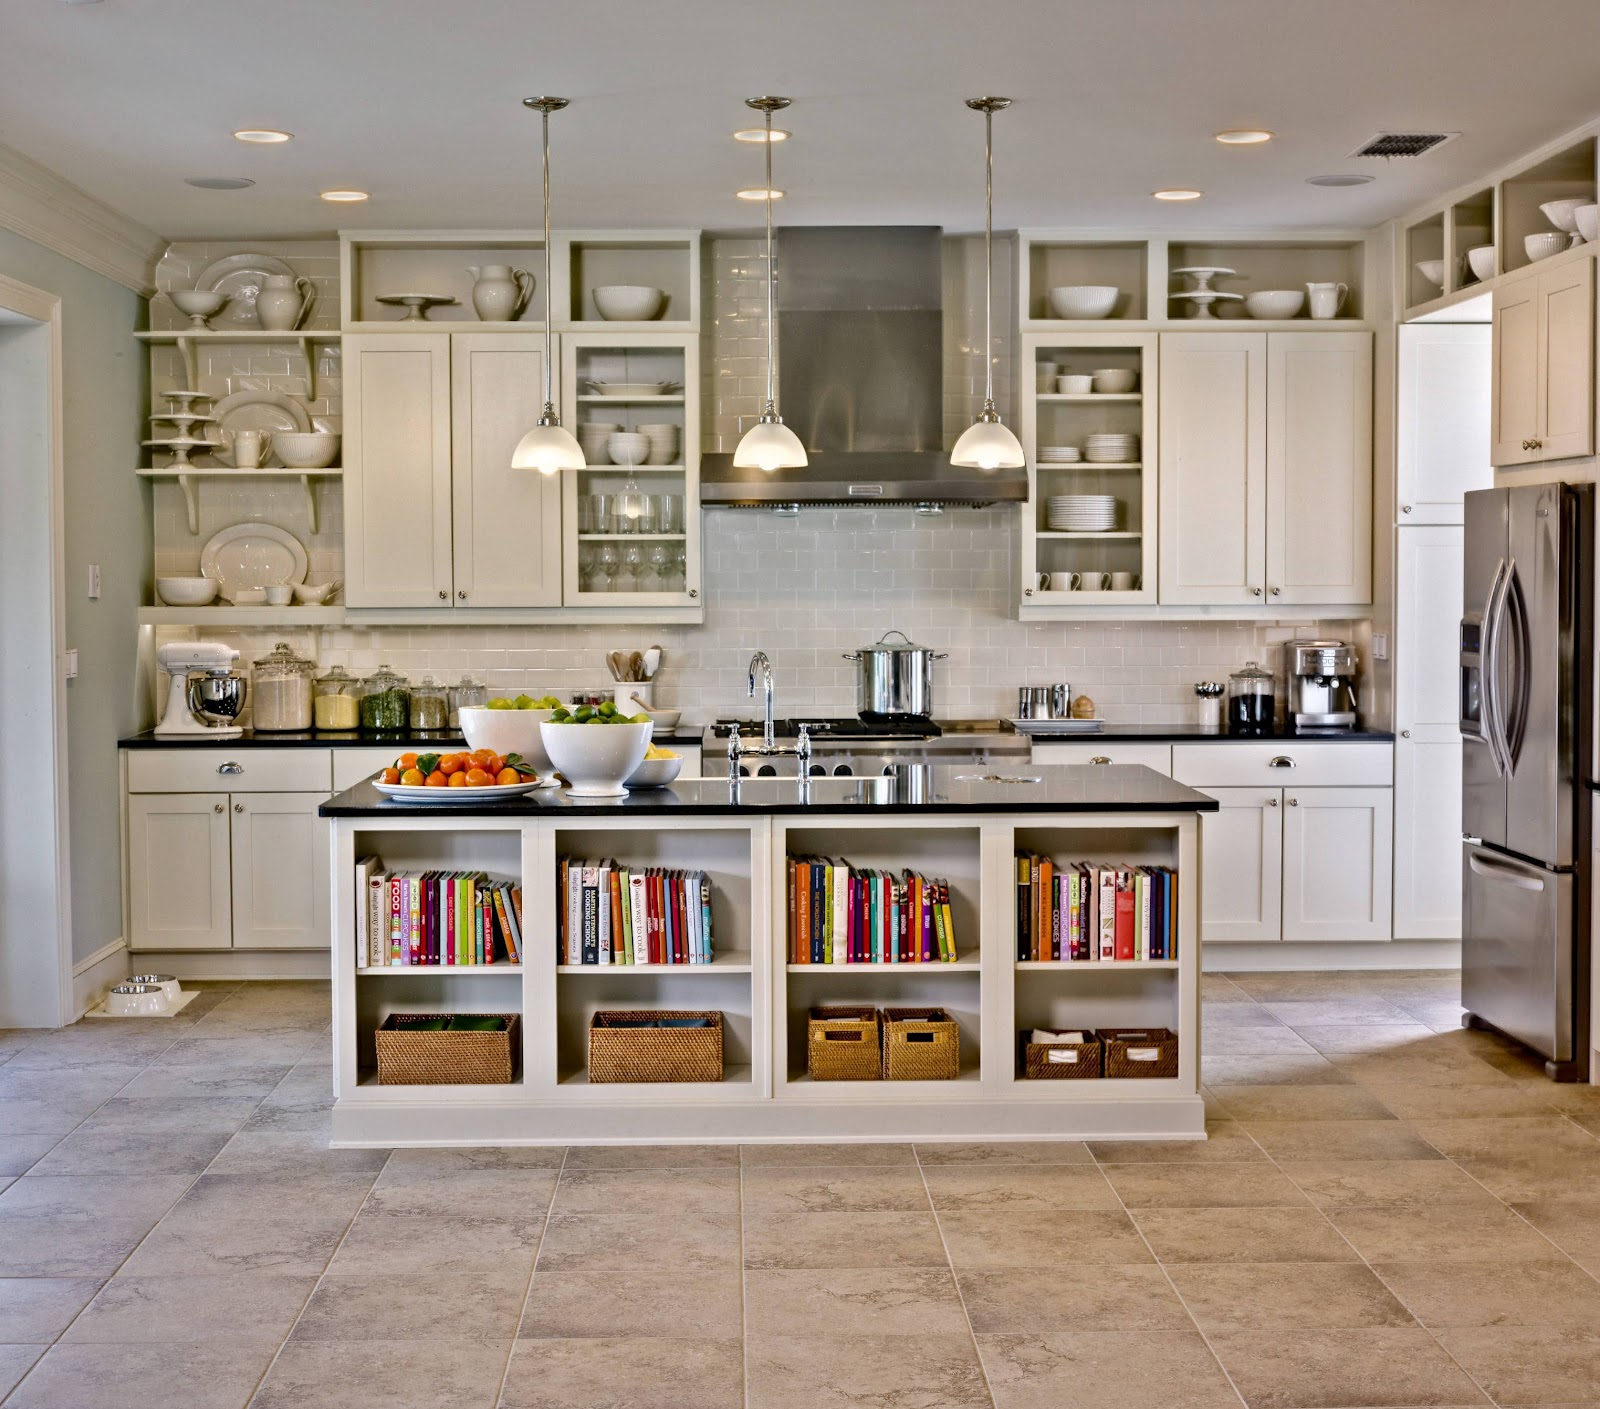 Kitchen cabinets for Assembling kitchen cabinets